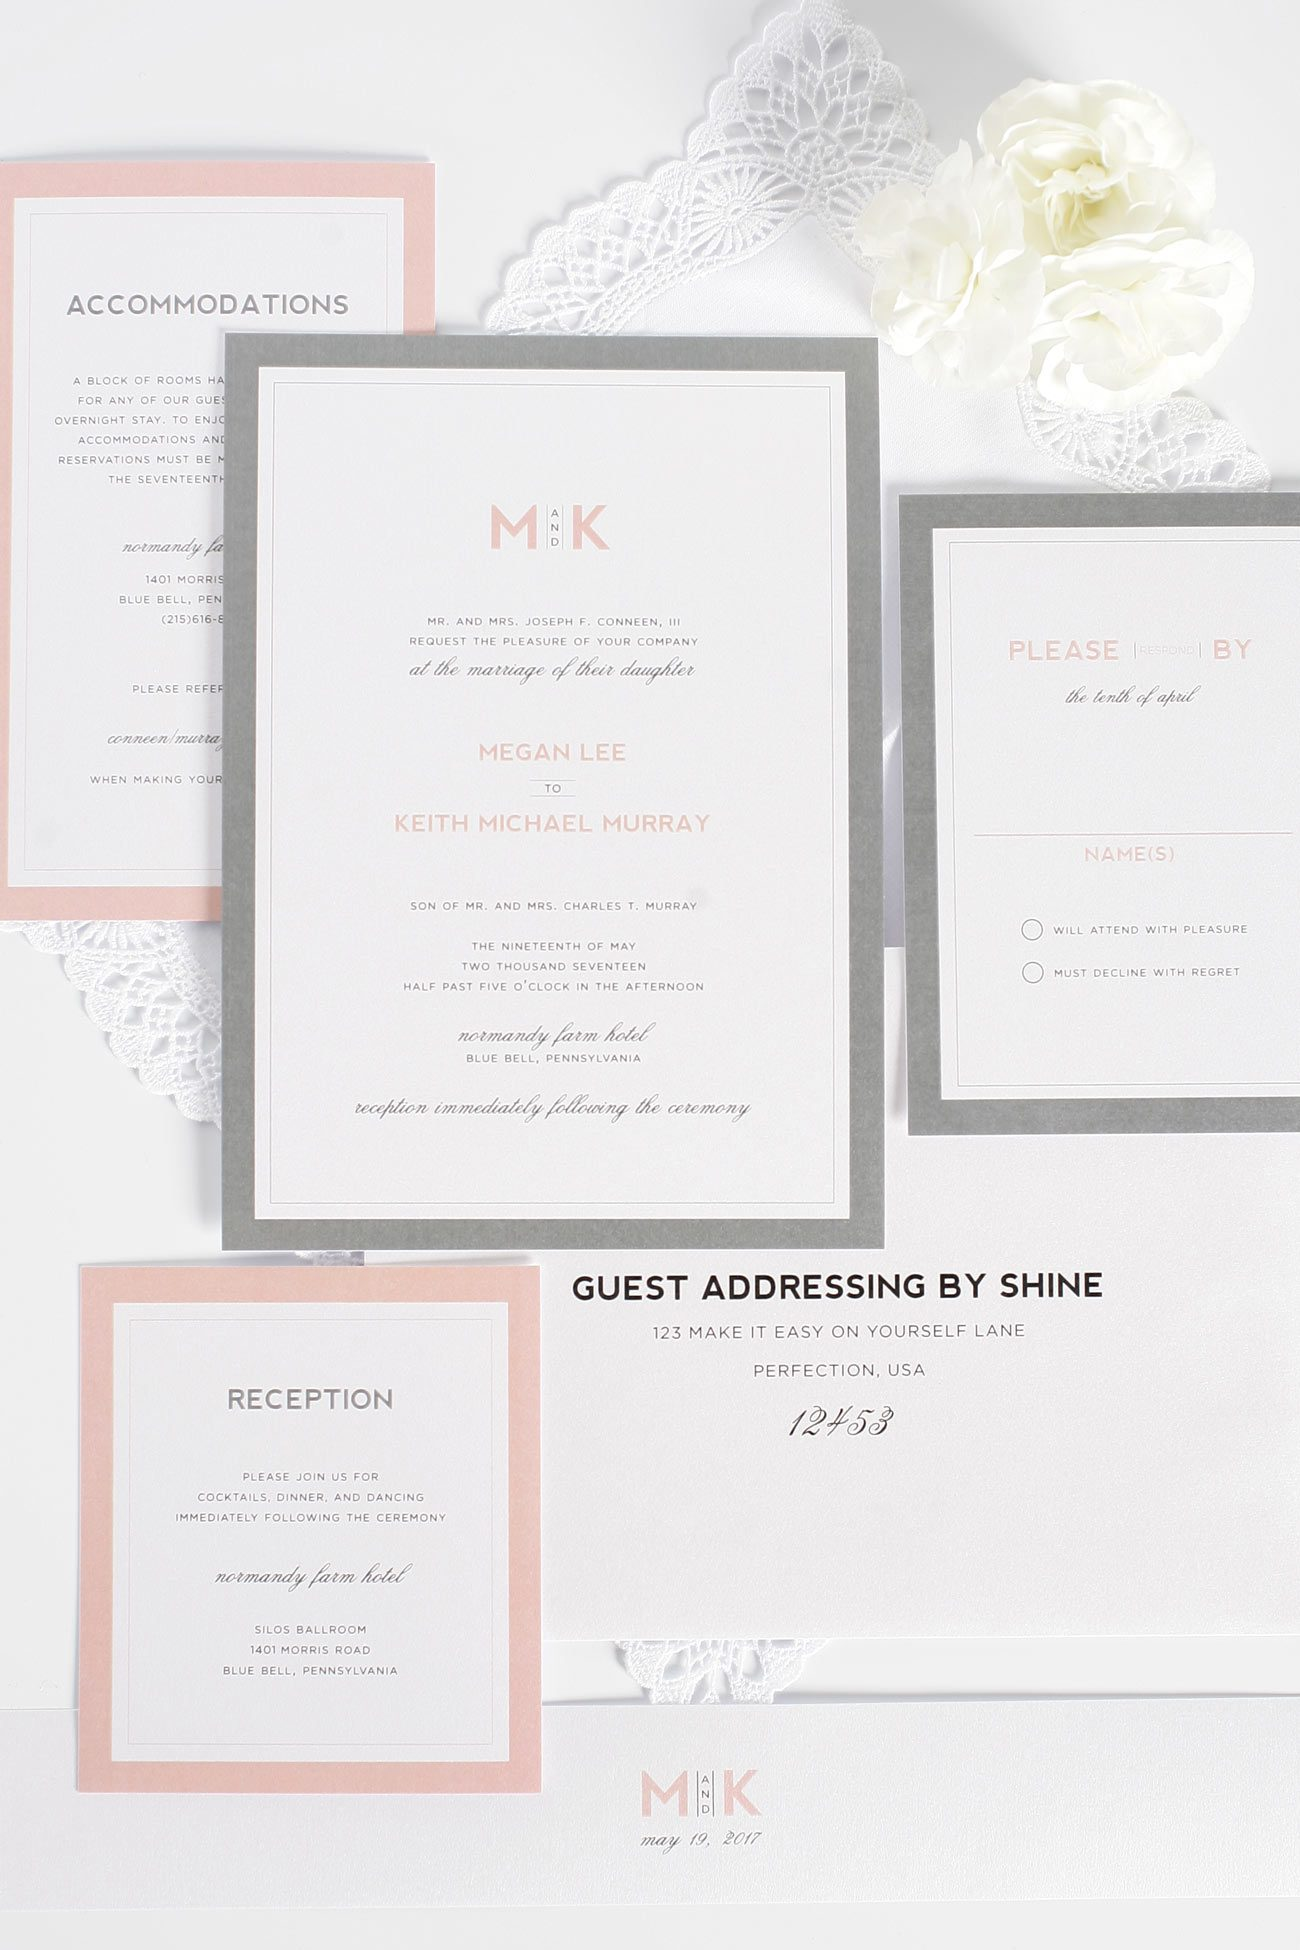 Gray and Blush Pink Wedding Invitations with a Monogram